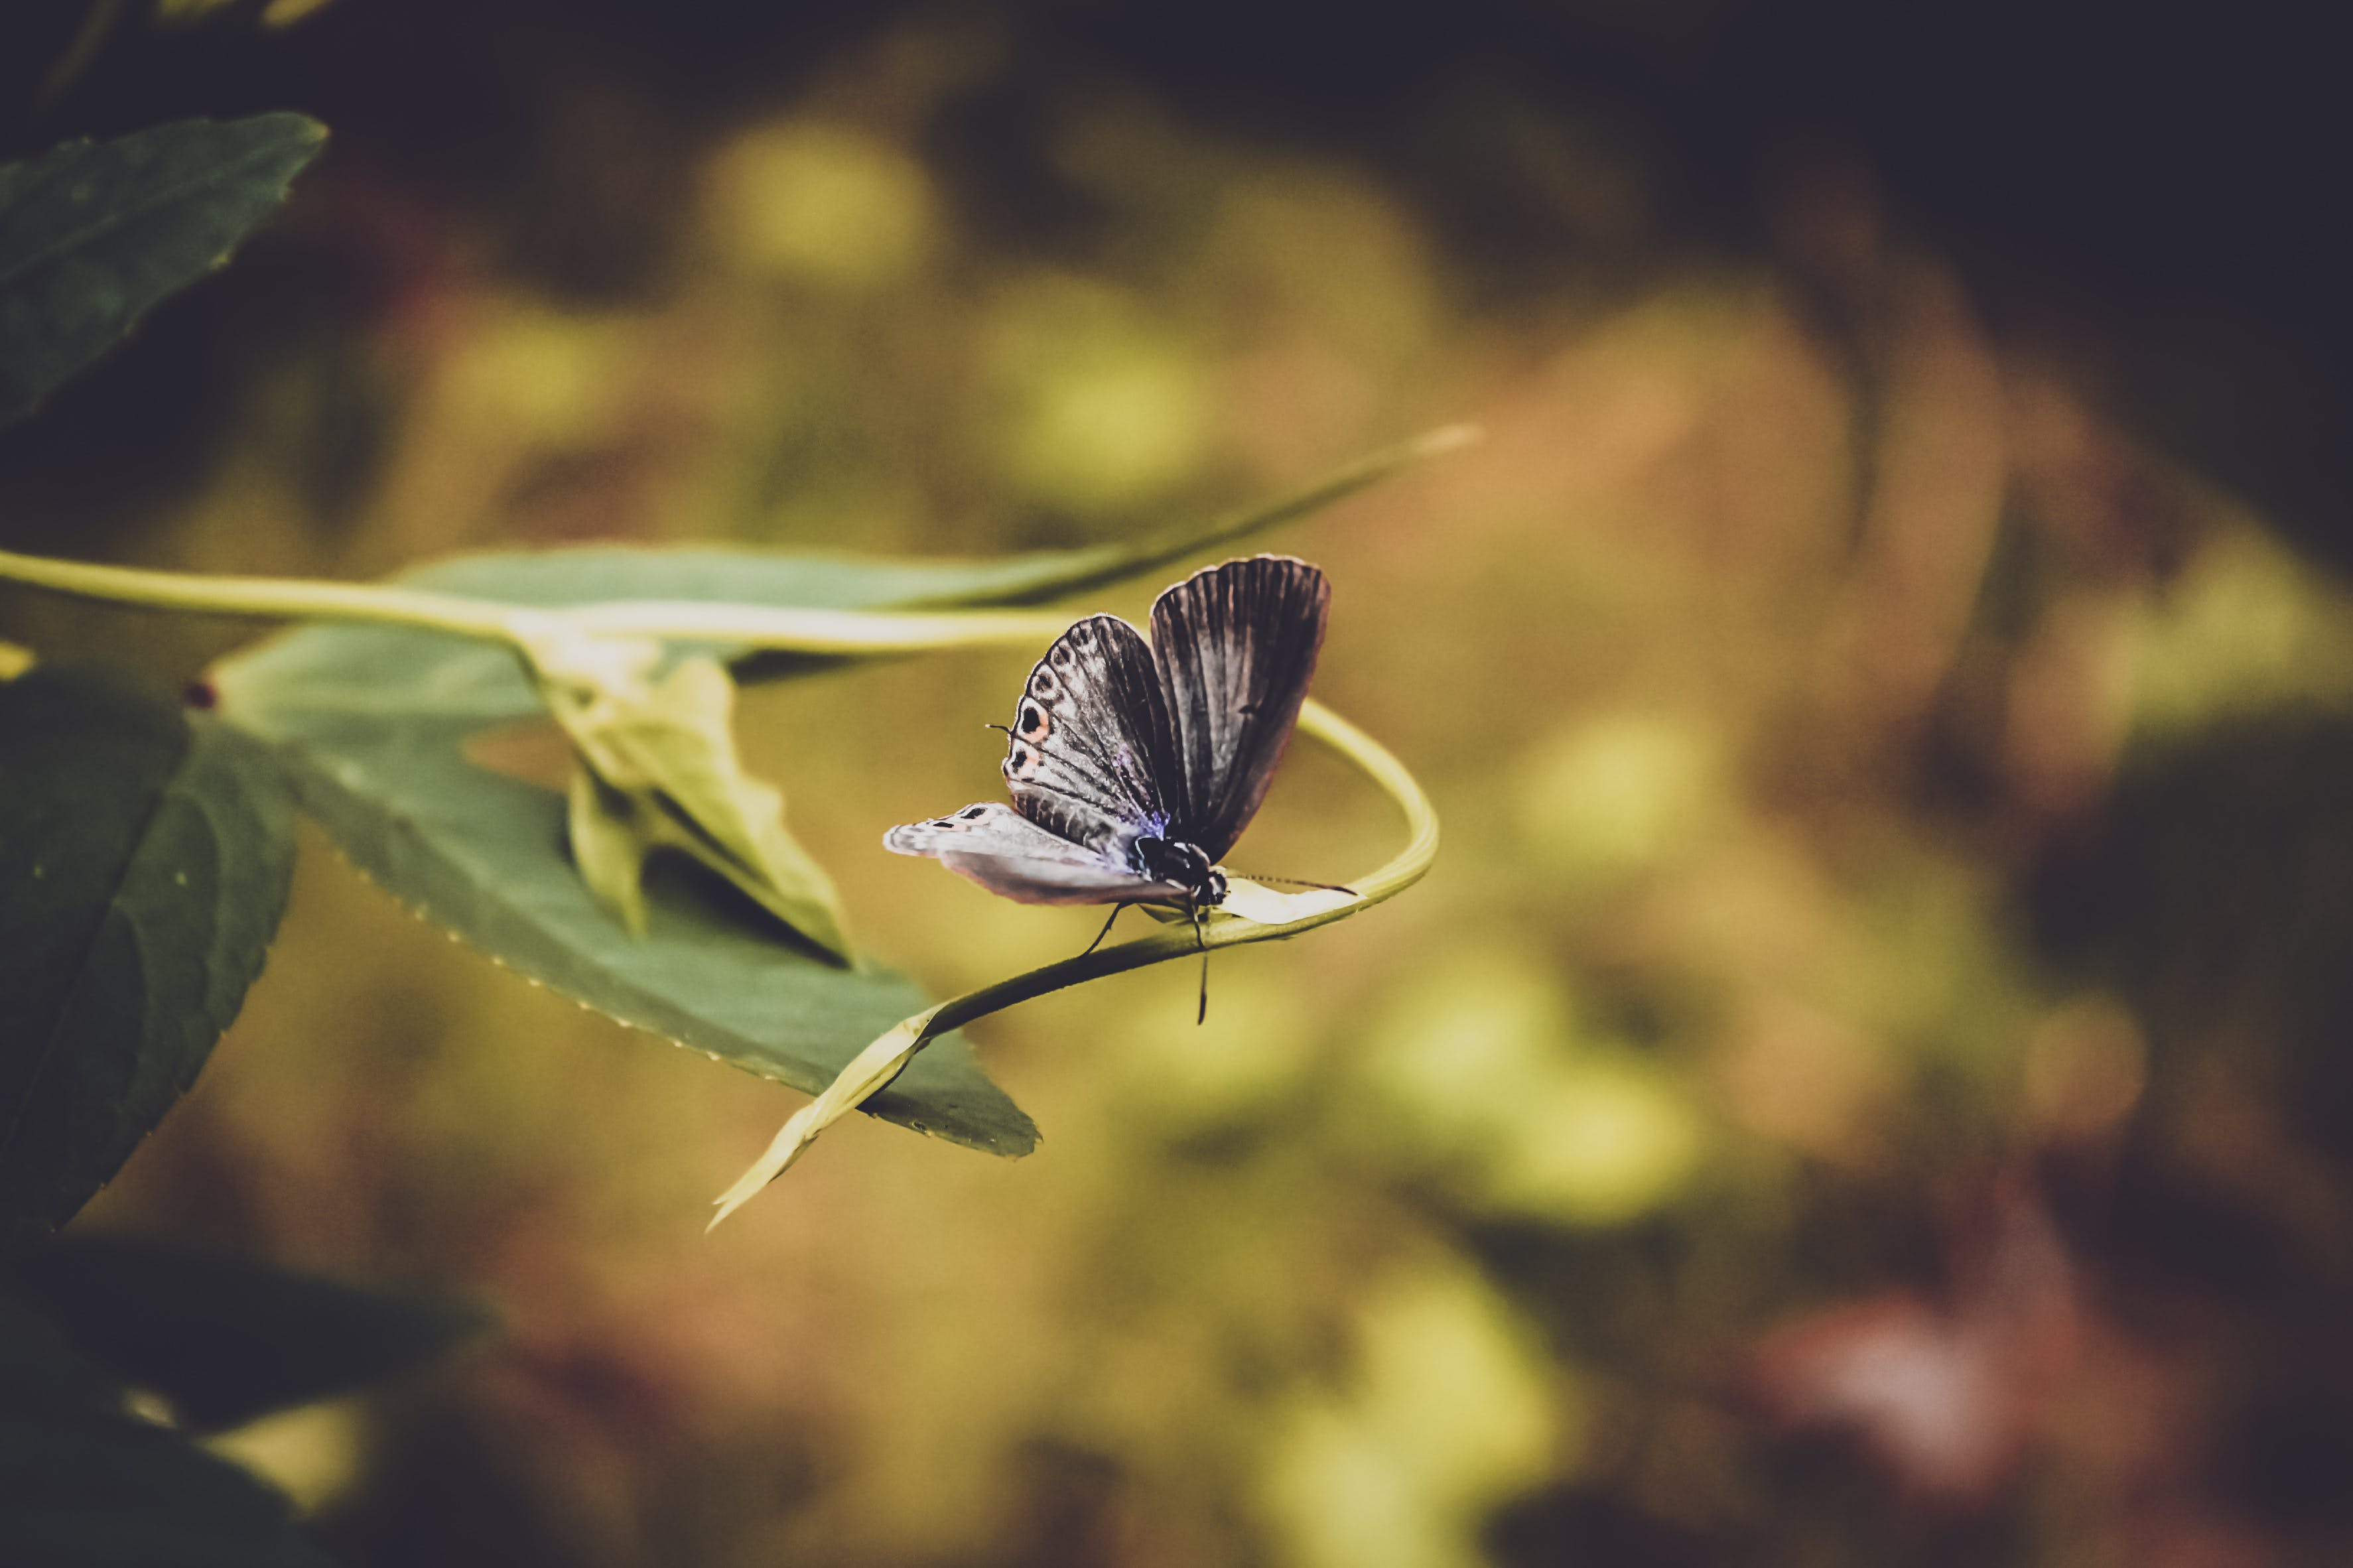 Black Butterfly Perching on Flower